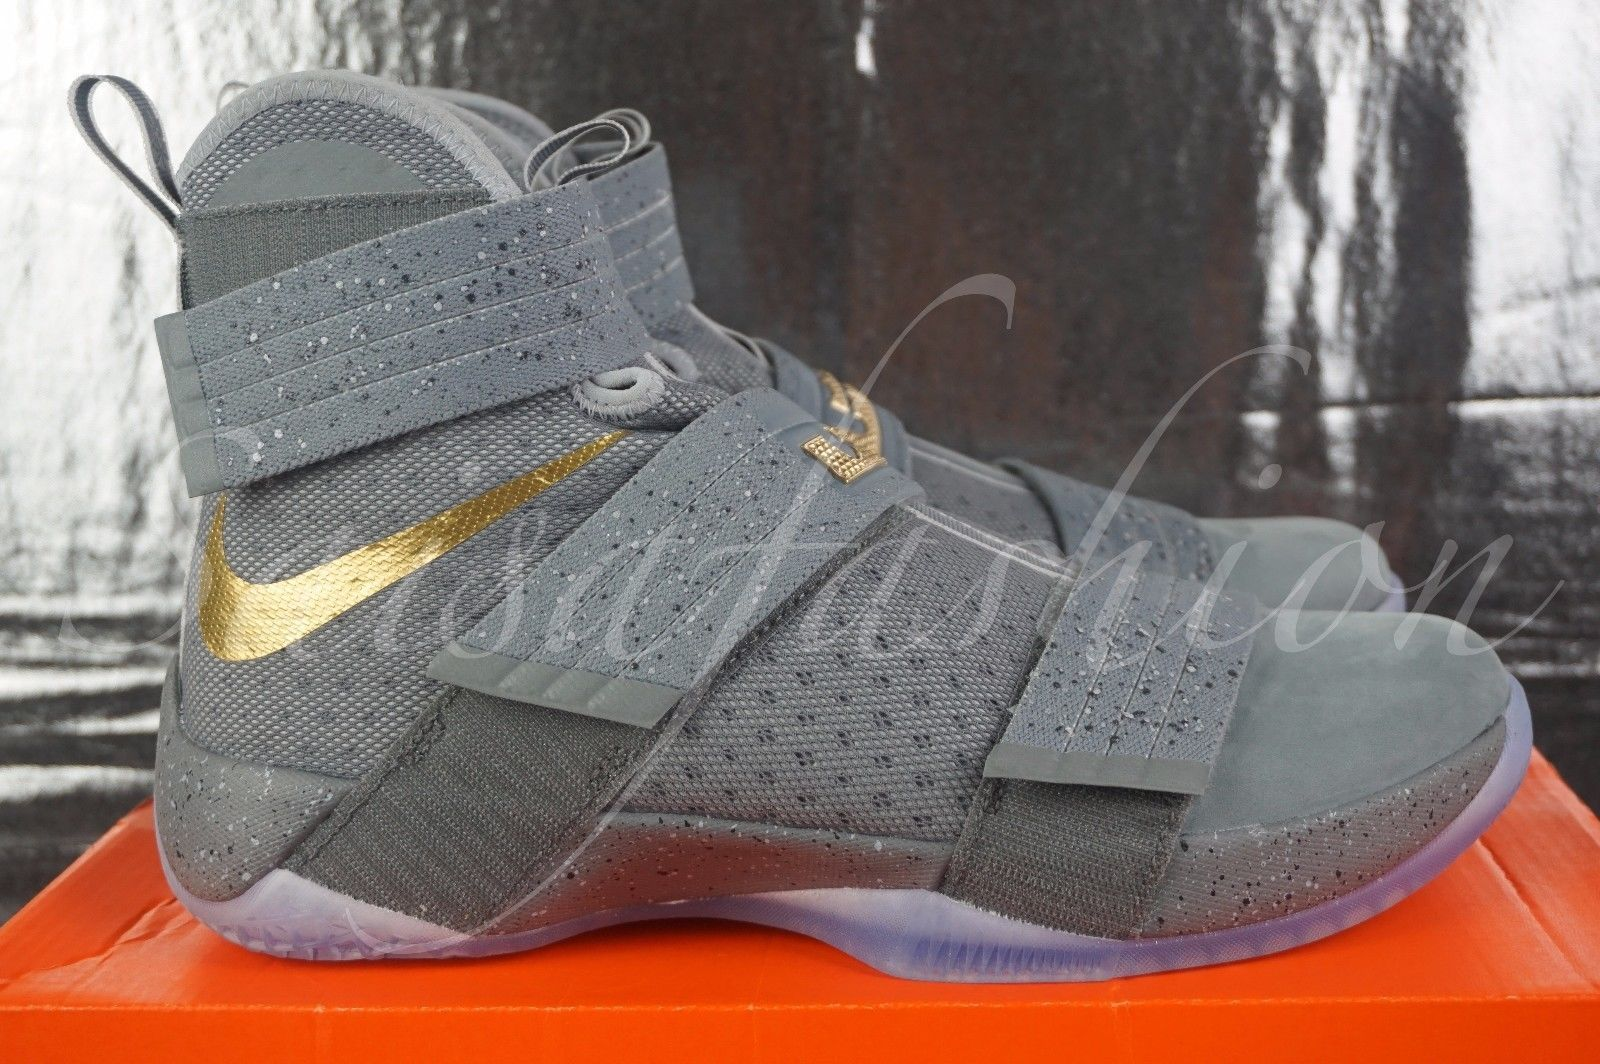 big sale c8ada 56df2 Nike Lebron Soldier 10 SPG PE Battle Grey Gold 899620-010 ...